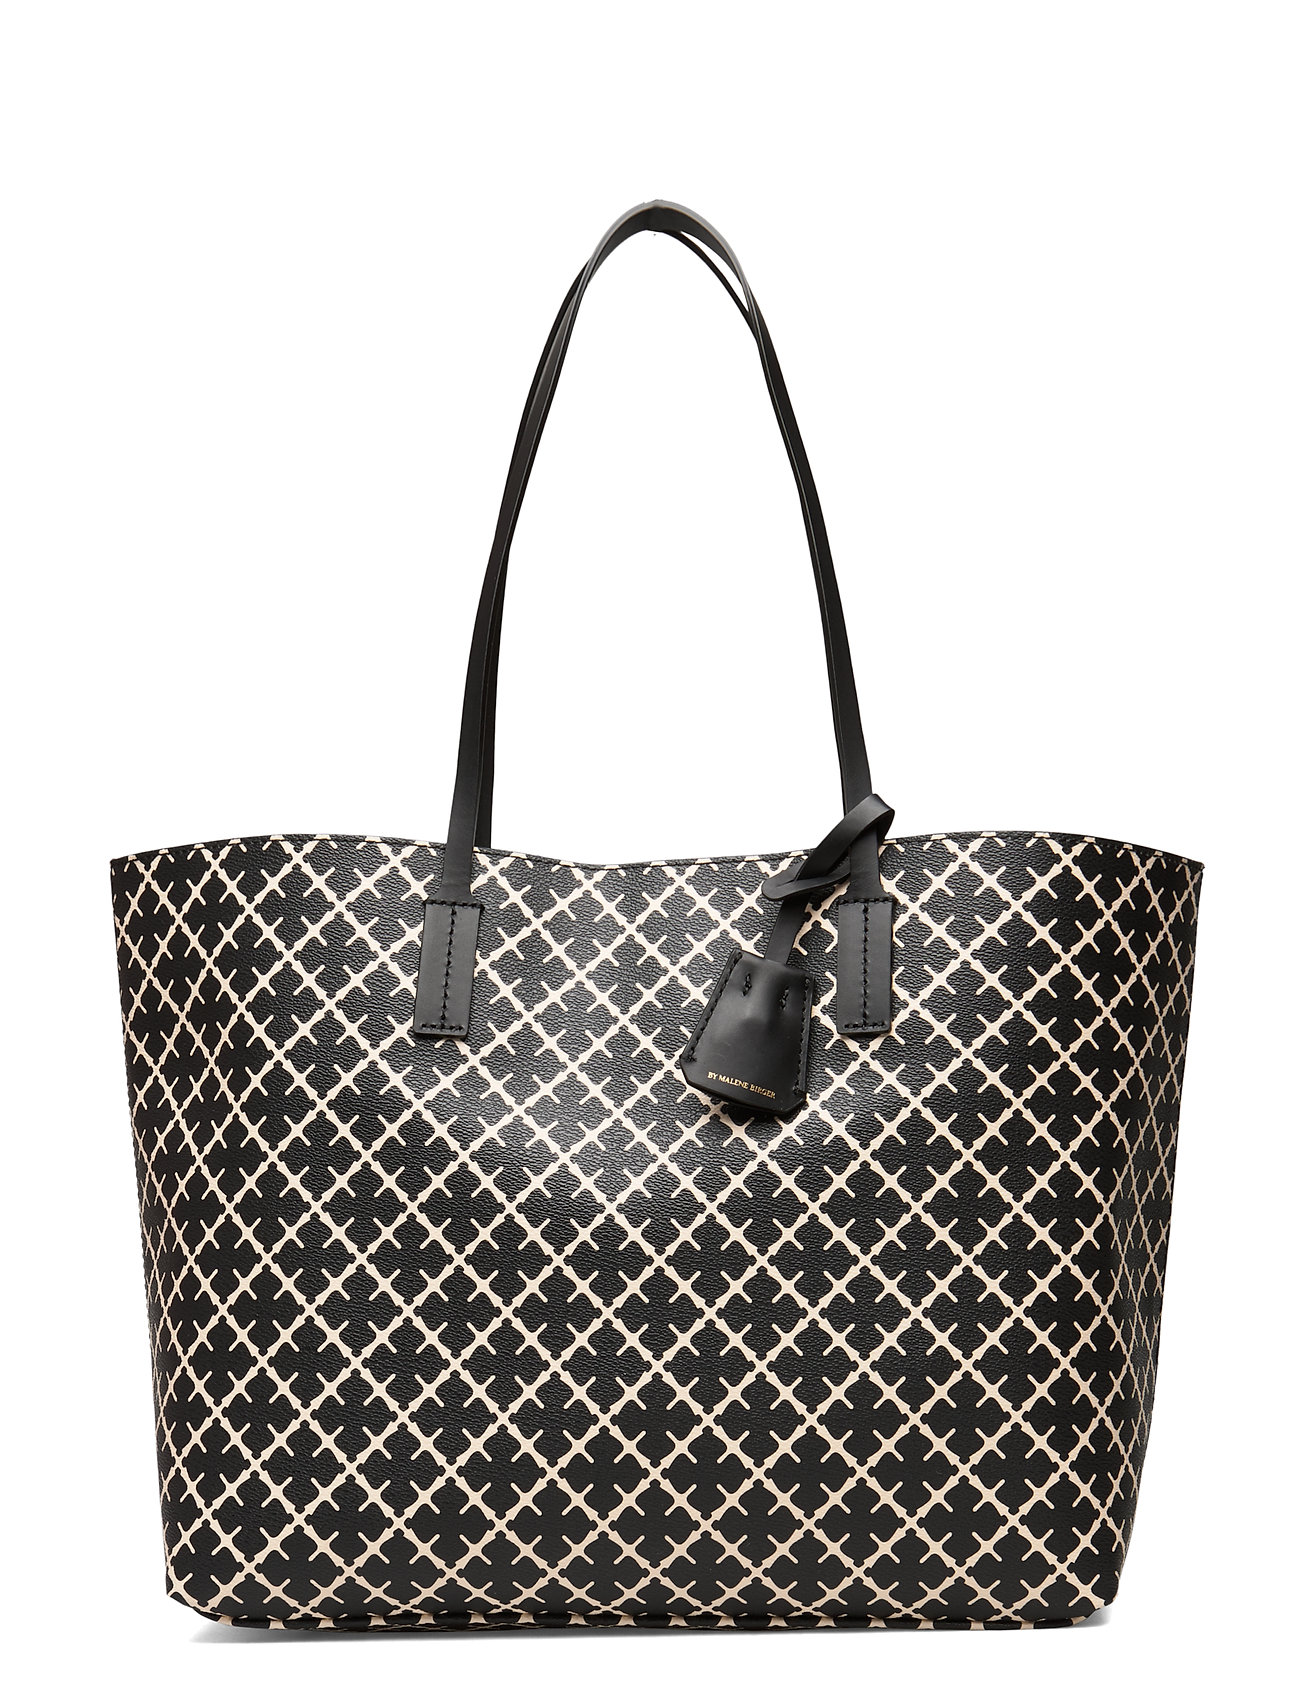 Image of Abigail Bags Shoppers Fashion Shoppers Sort By Malene Birger (3350047507)